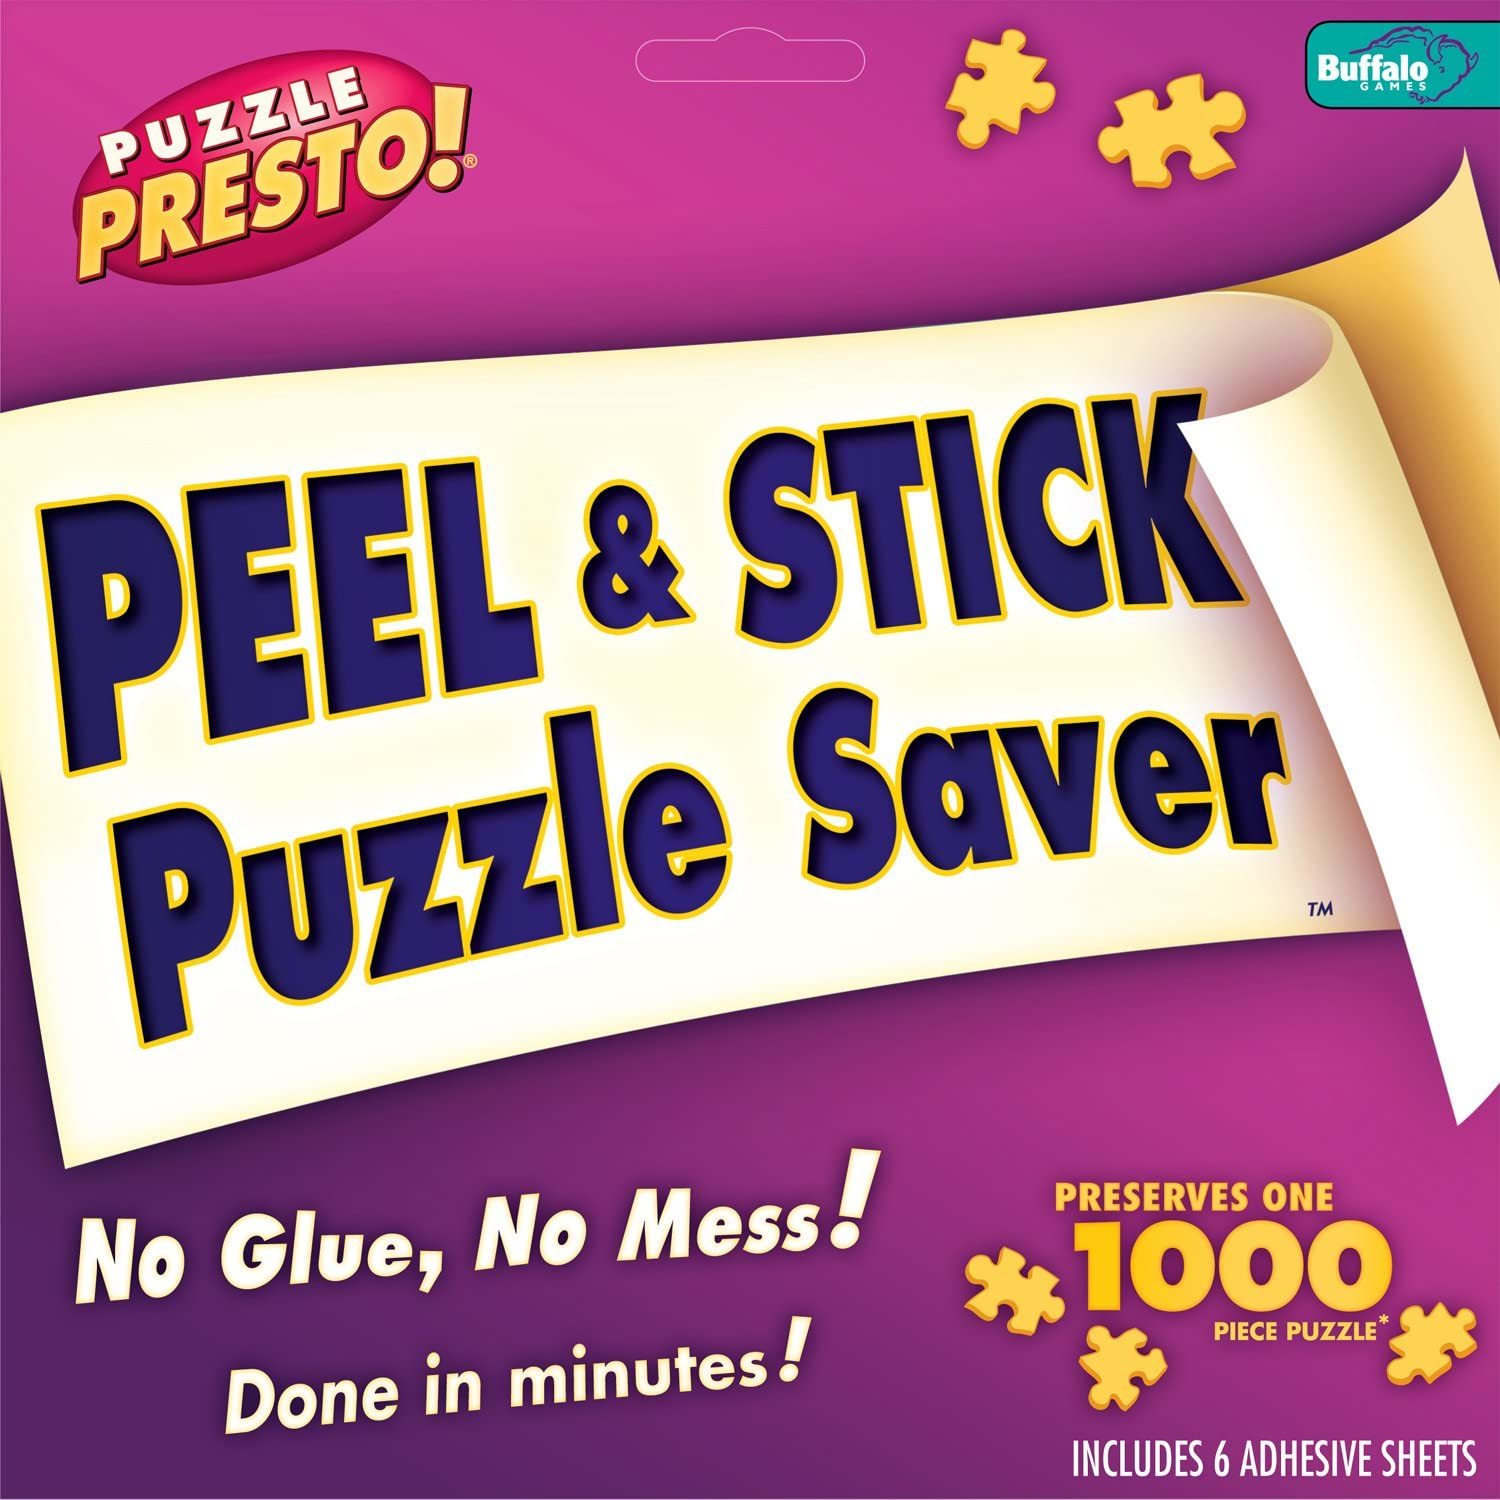 Puzzle Presto! Peel & Stick Puzzle Saver: The Original and Still the Best Way to Preserve Your Finished Puzzle! by Buffalo Games